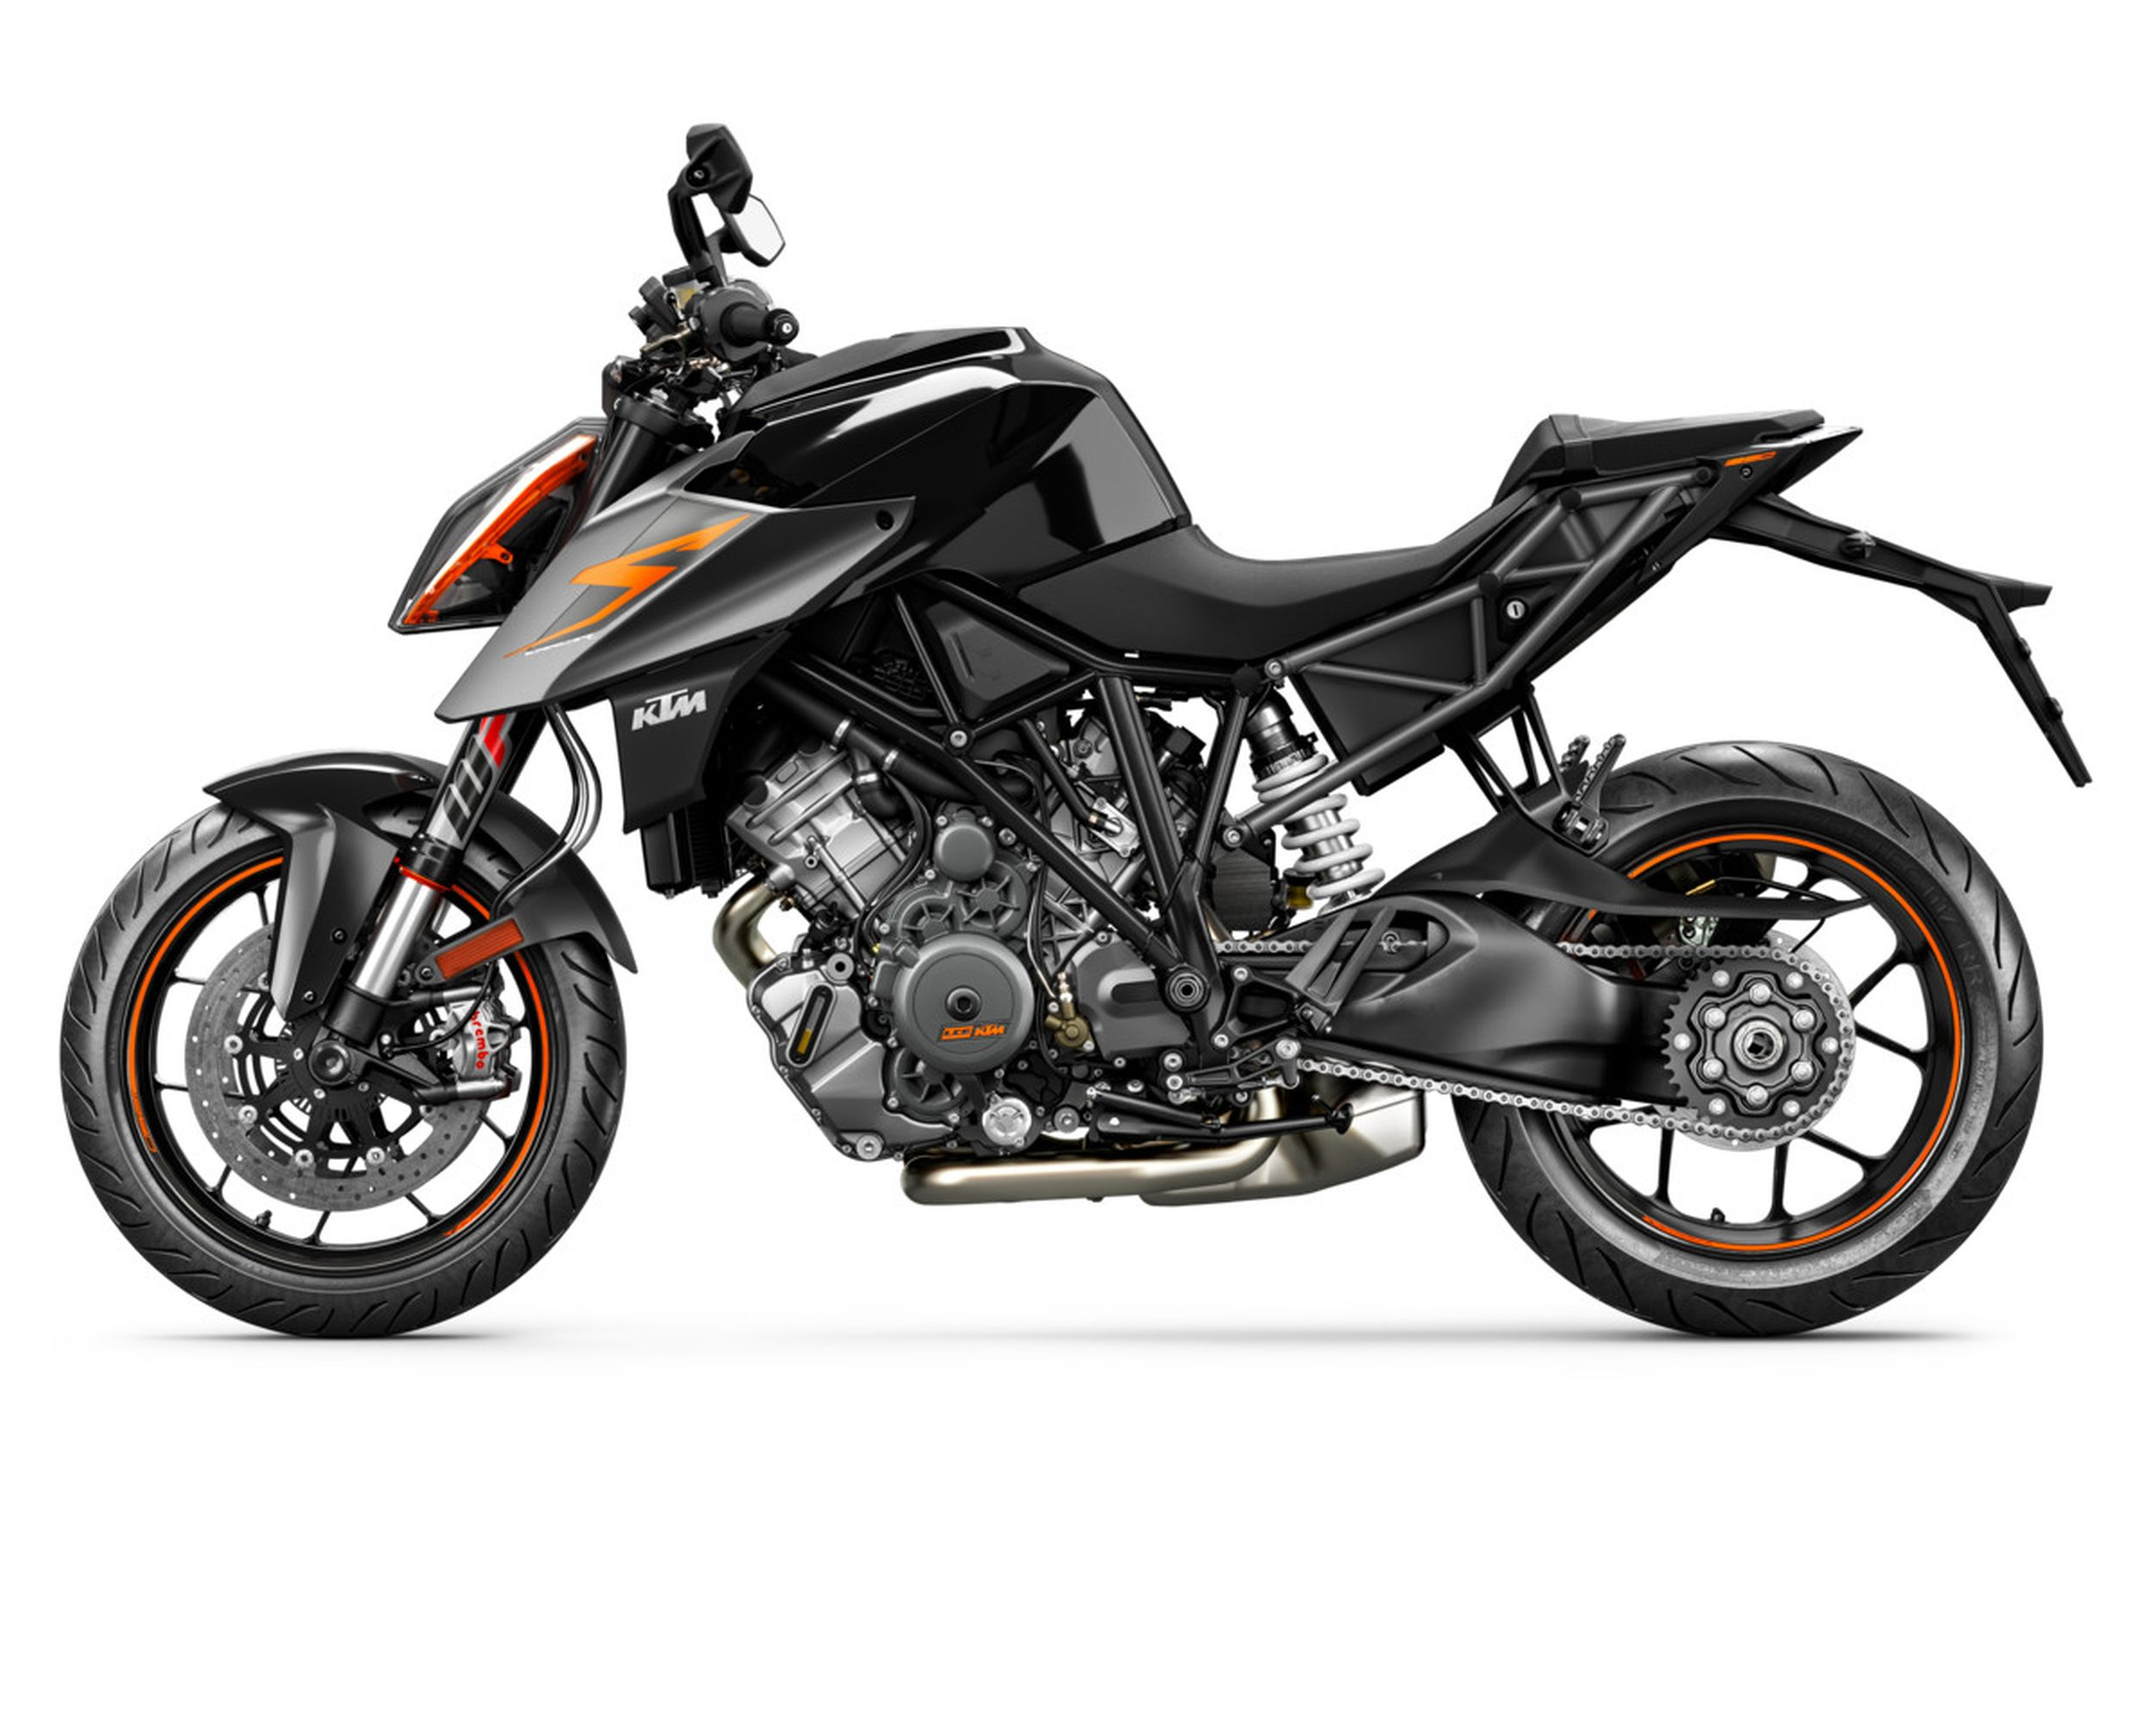 ktm 1290 super duke r test gebrauchte bilder technische daten. Black Bedroom Furniture Sets. Home Design Ideas